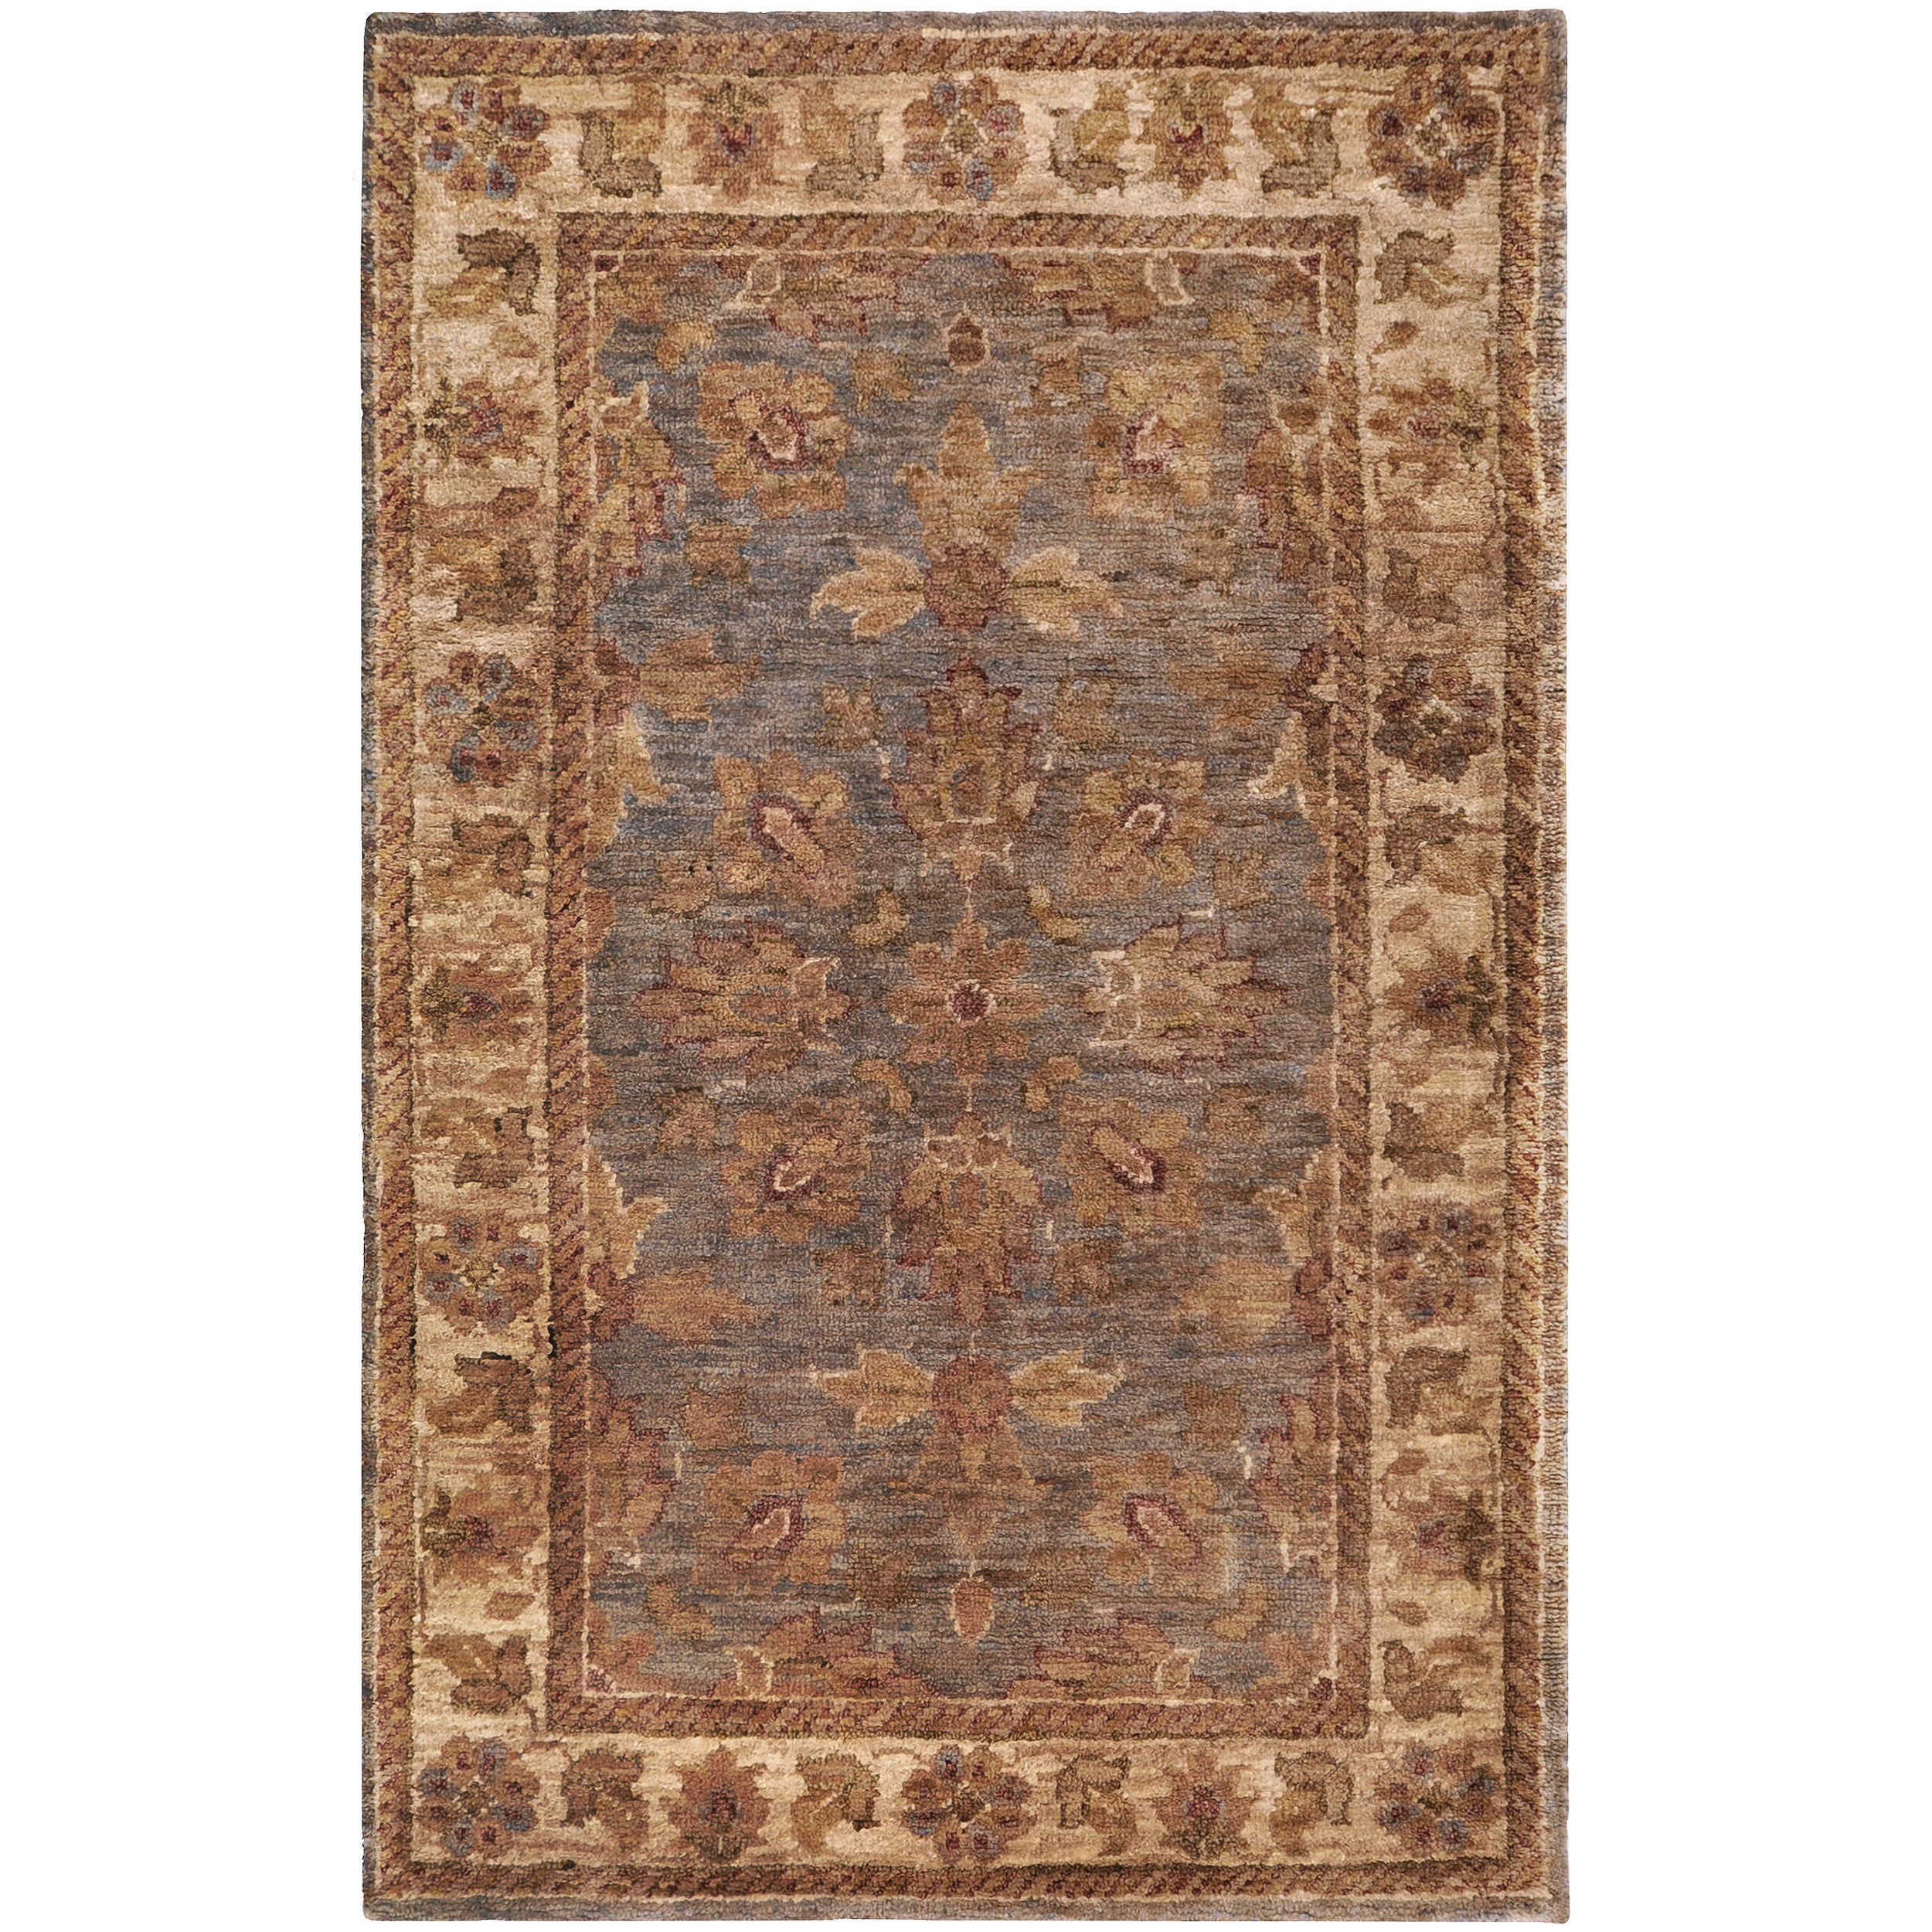 Hand-woven Multicolored Sauk Traditional Border Hemp Rug (2' x 3')